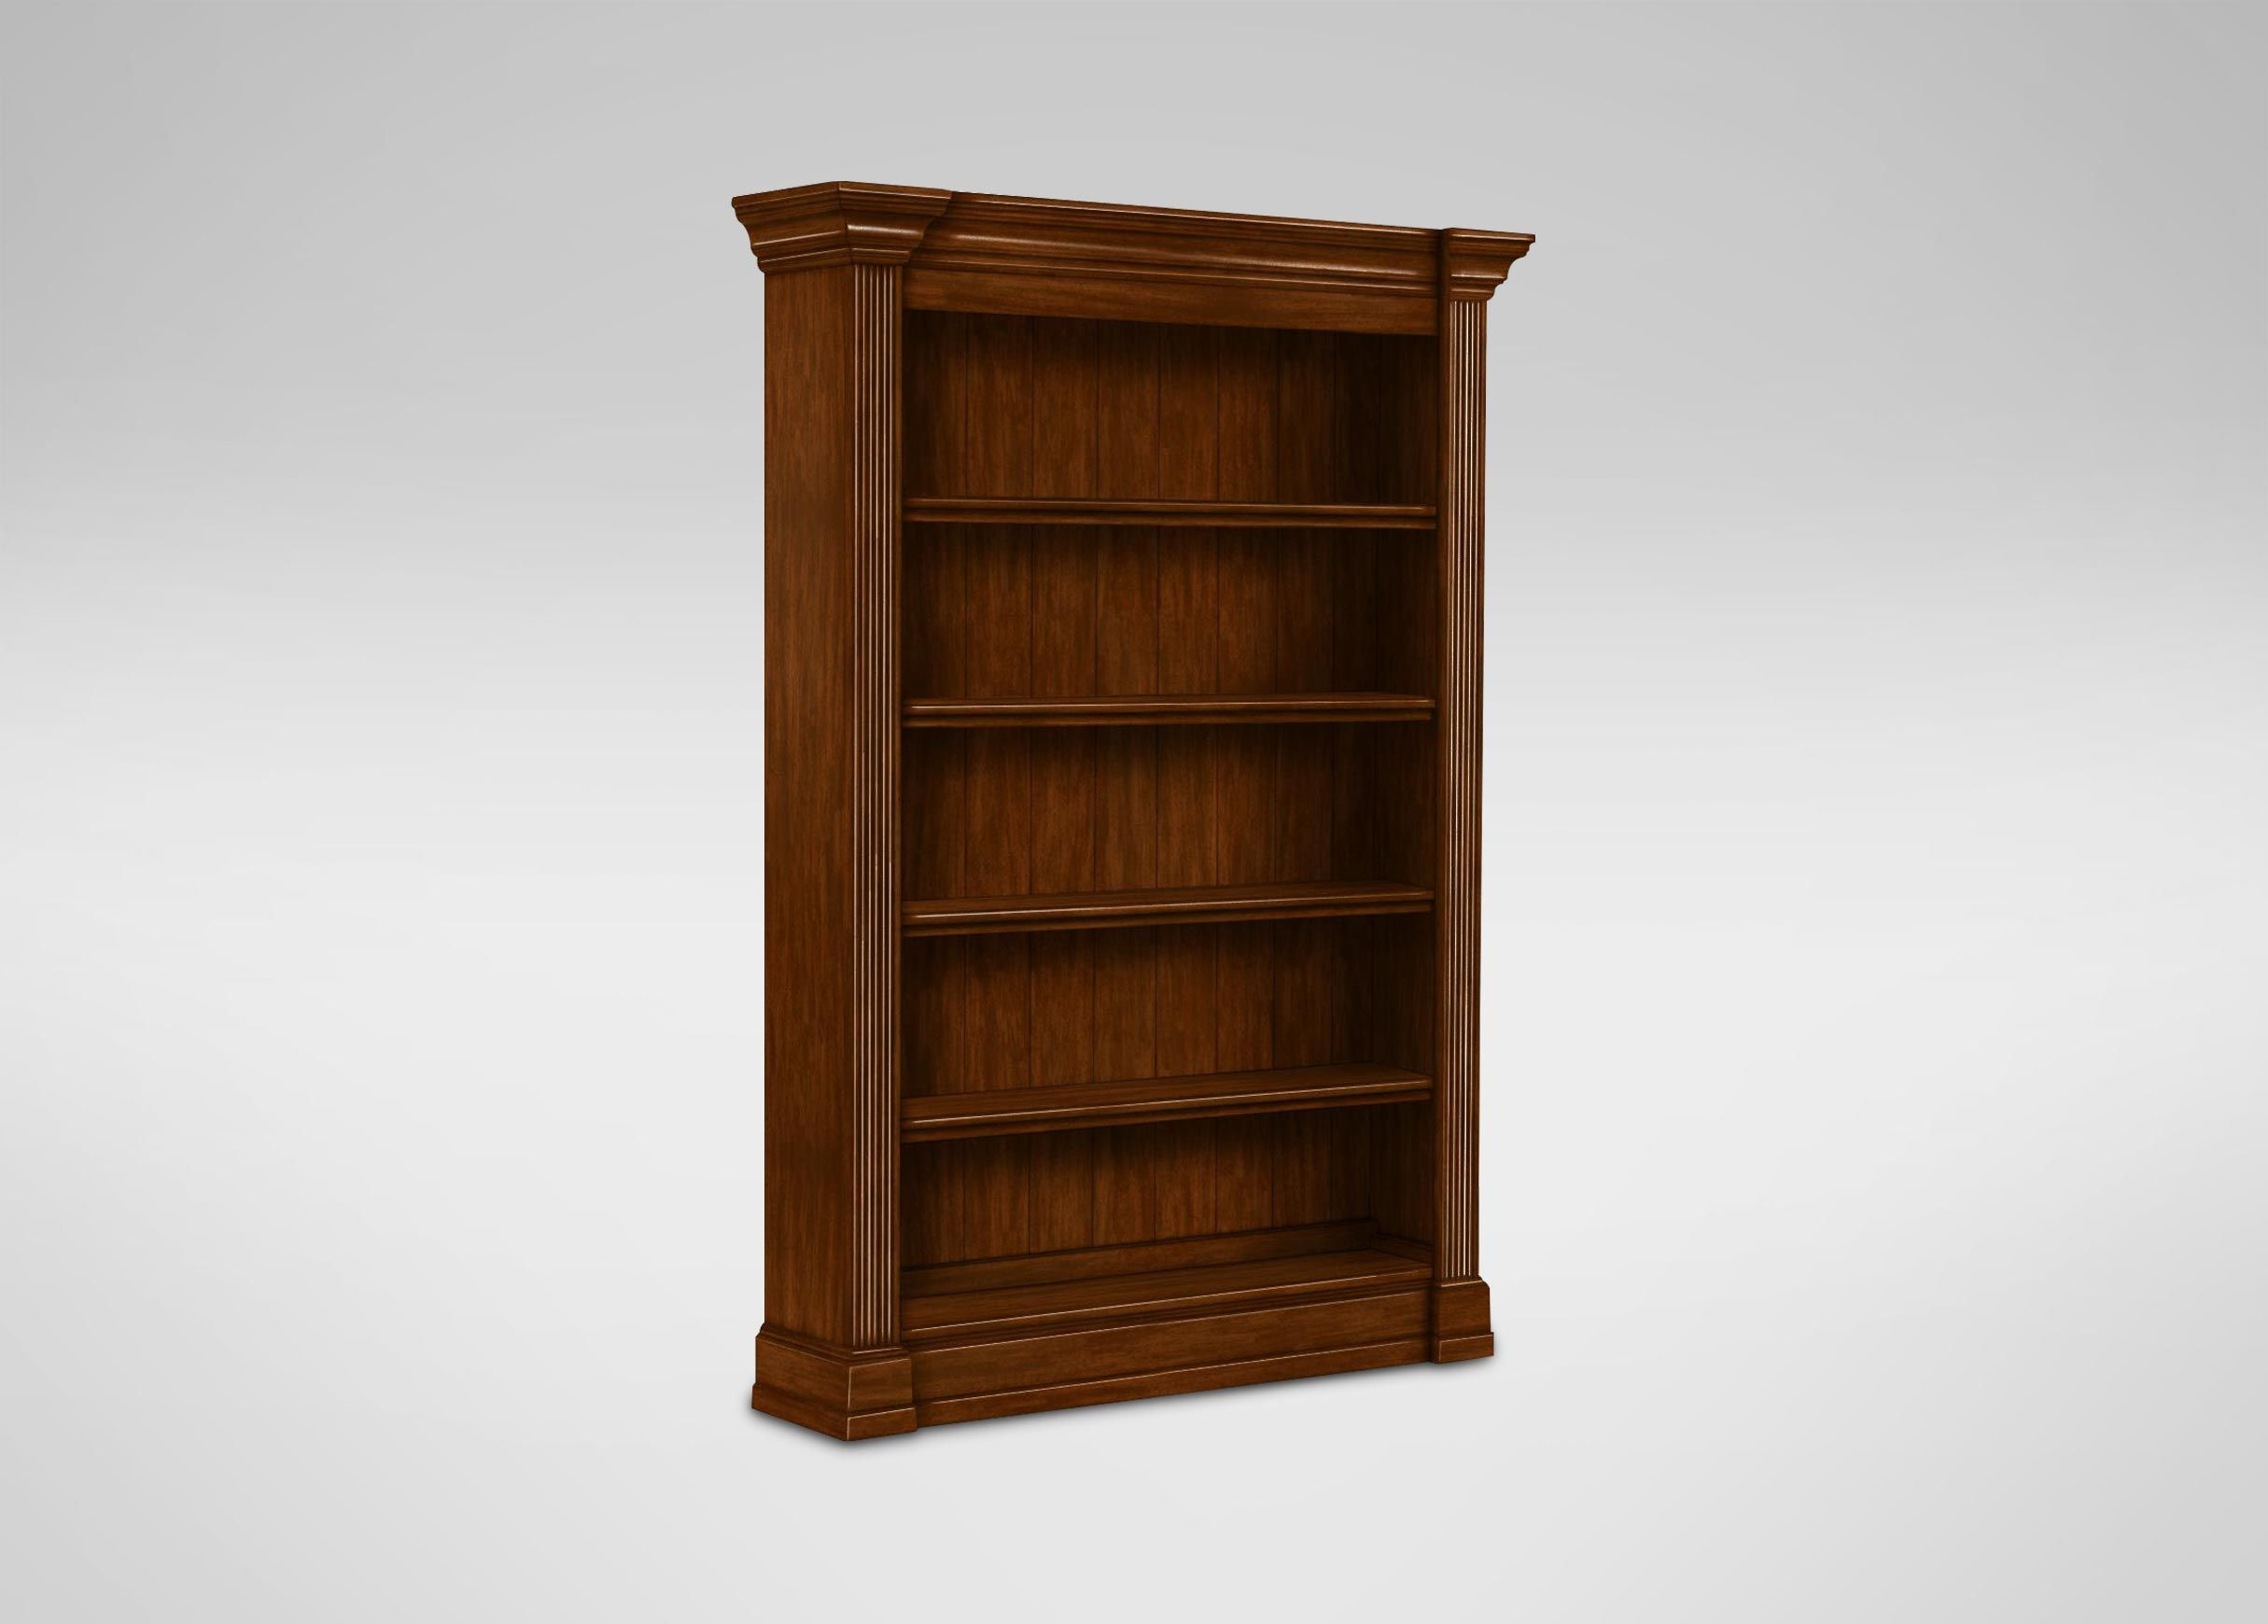 null default allen on ethan ethanallen front store site library bookcases variation double bookcase images villa product us di demandware sites